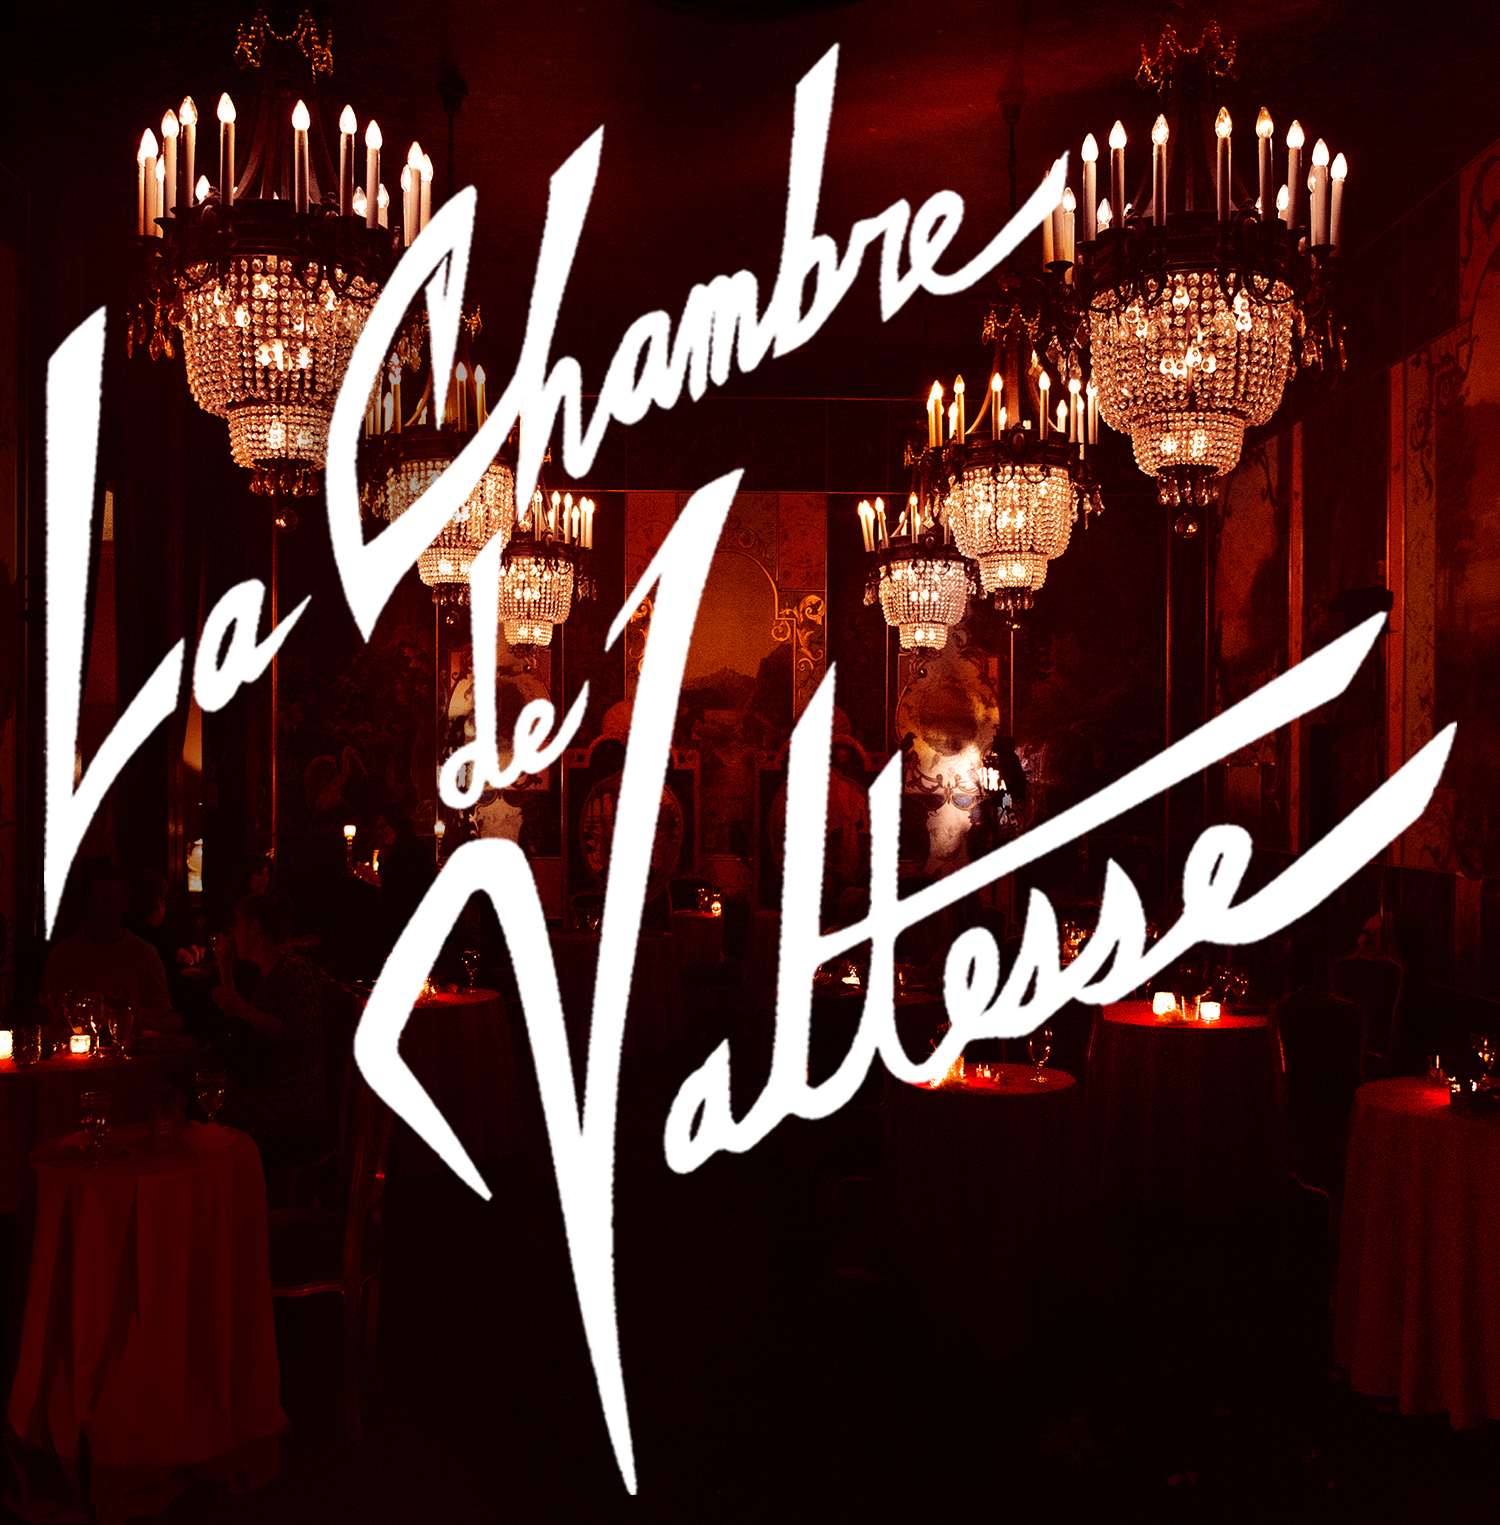 Chambre Gender La Chambre De Valtesse Tickets The Ruins Seattle Wa Fri Aug 24 2018 At 8pm Stranger Tickets